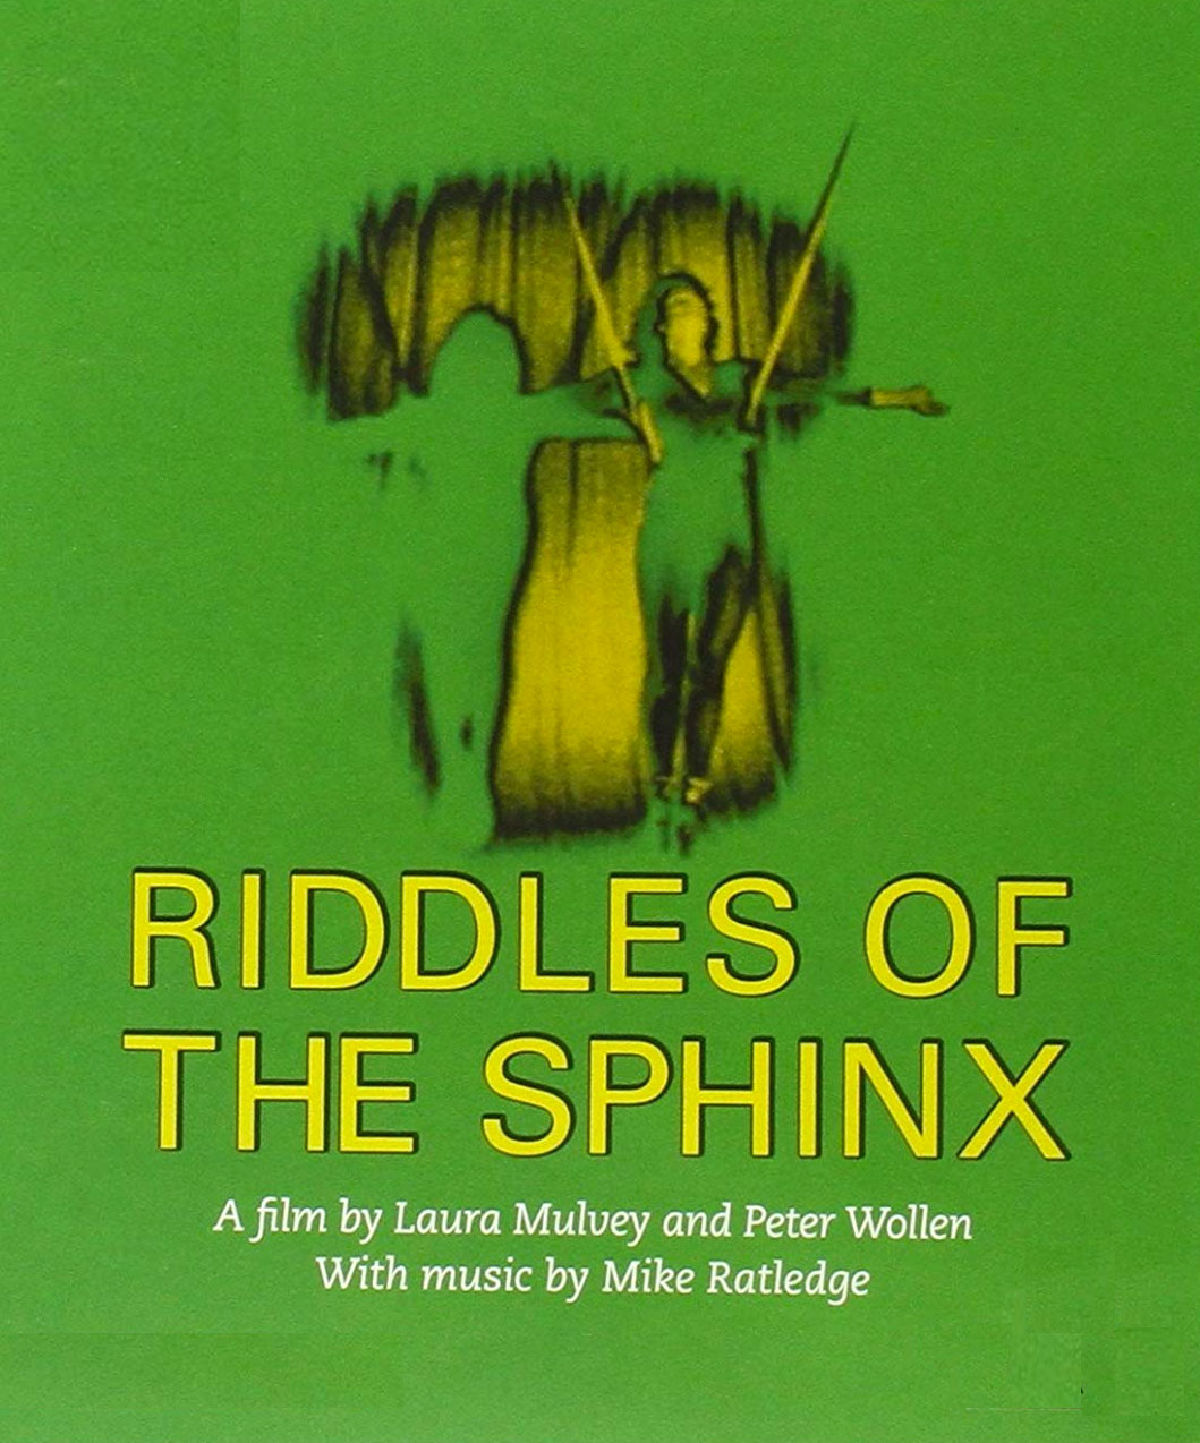 'Riddles Of The Sphinx' movie poster